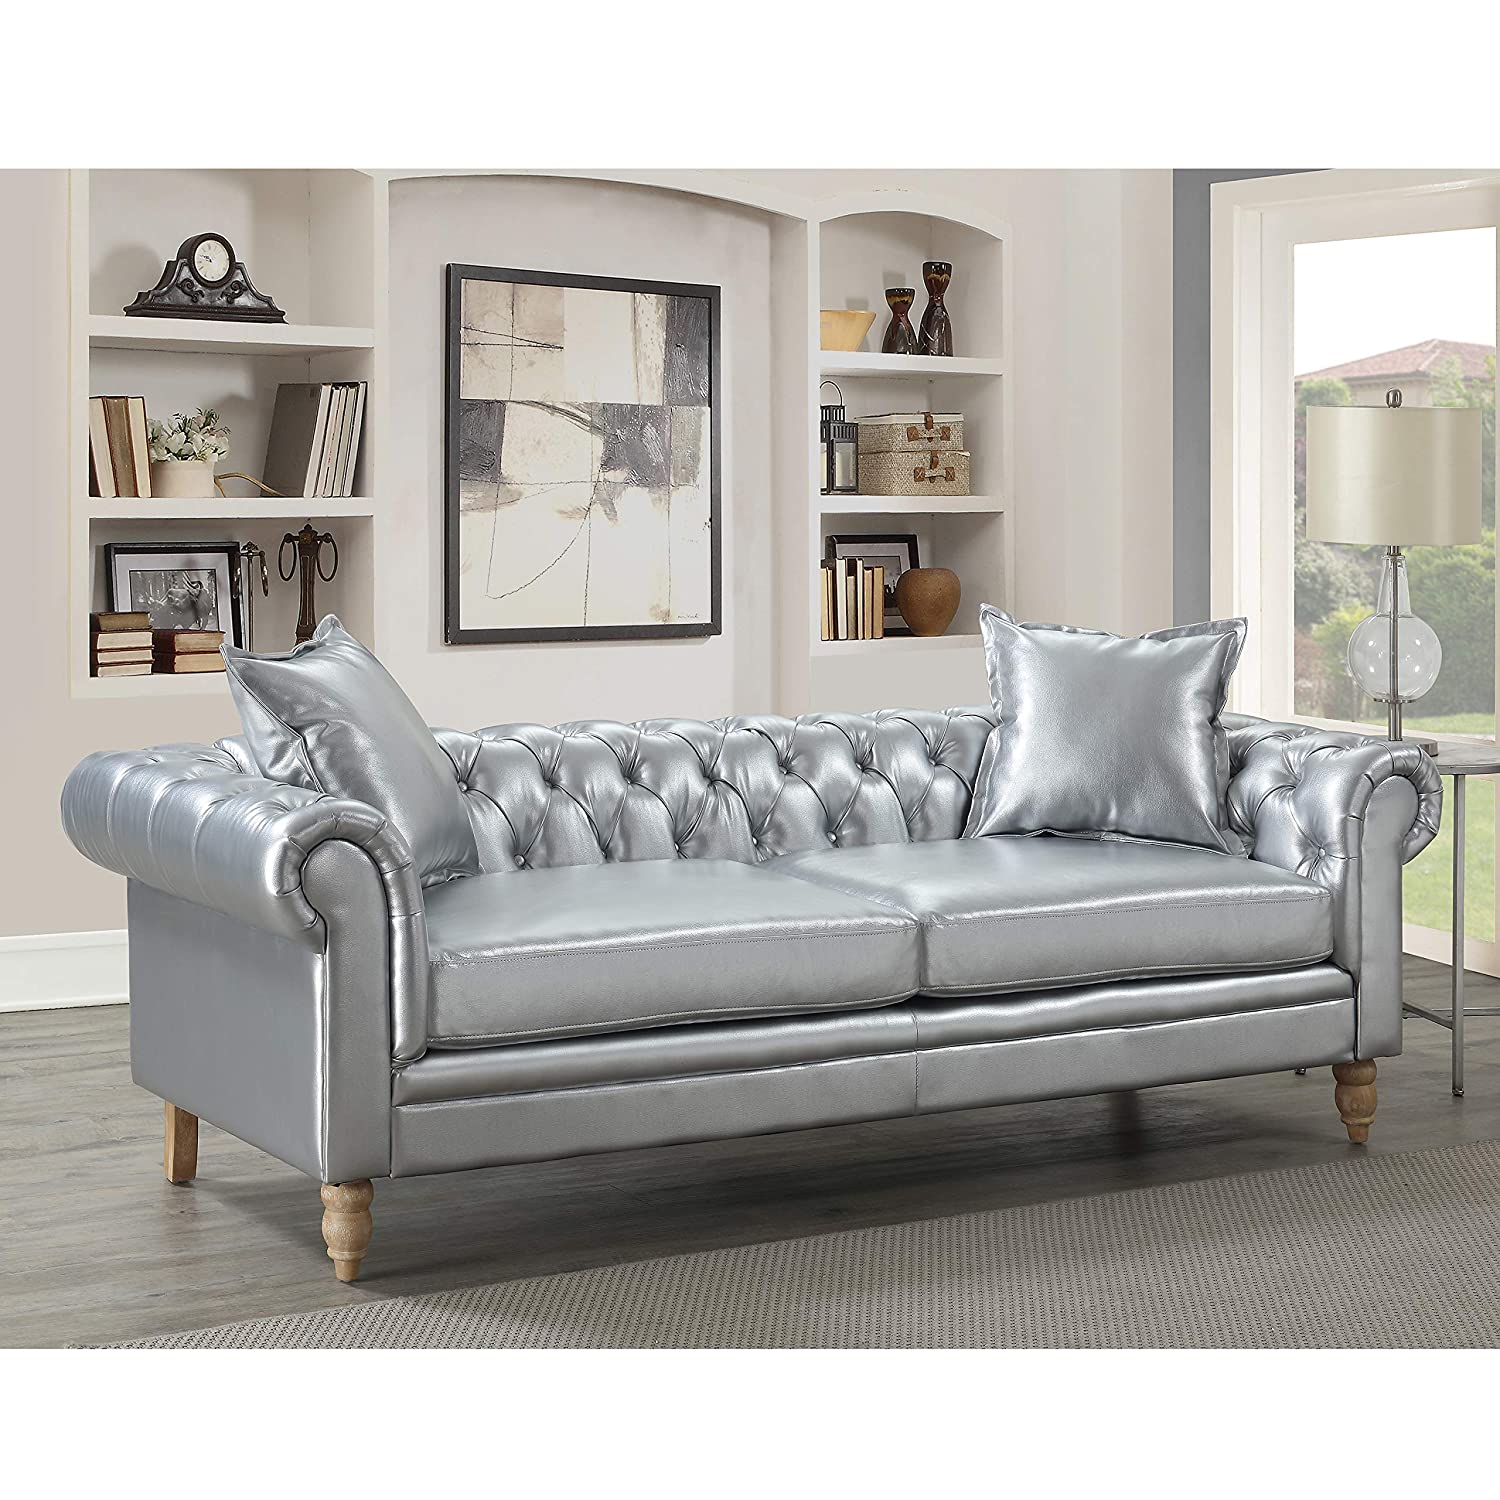 Christies Home Living Juliet Collection Contemporary Living Room  Chesterfield Sofa Linen Fabric Upholstered Button Tufted Silver